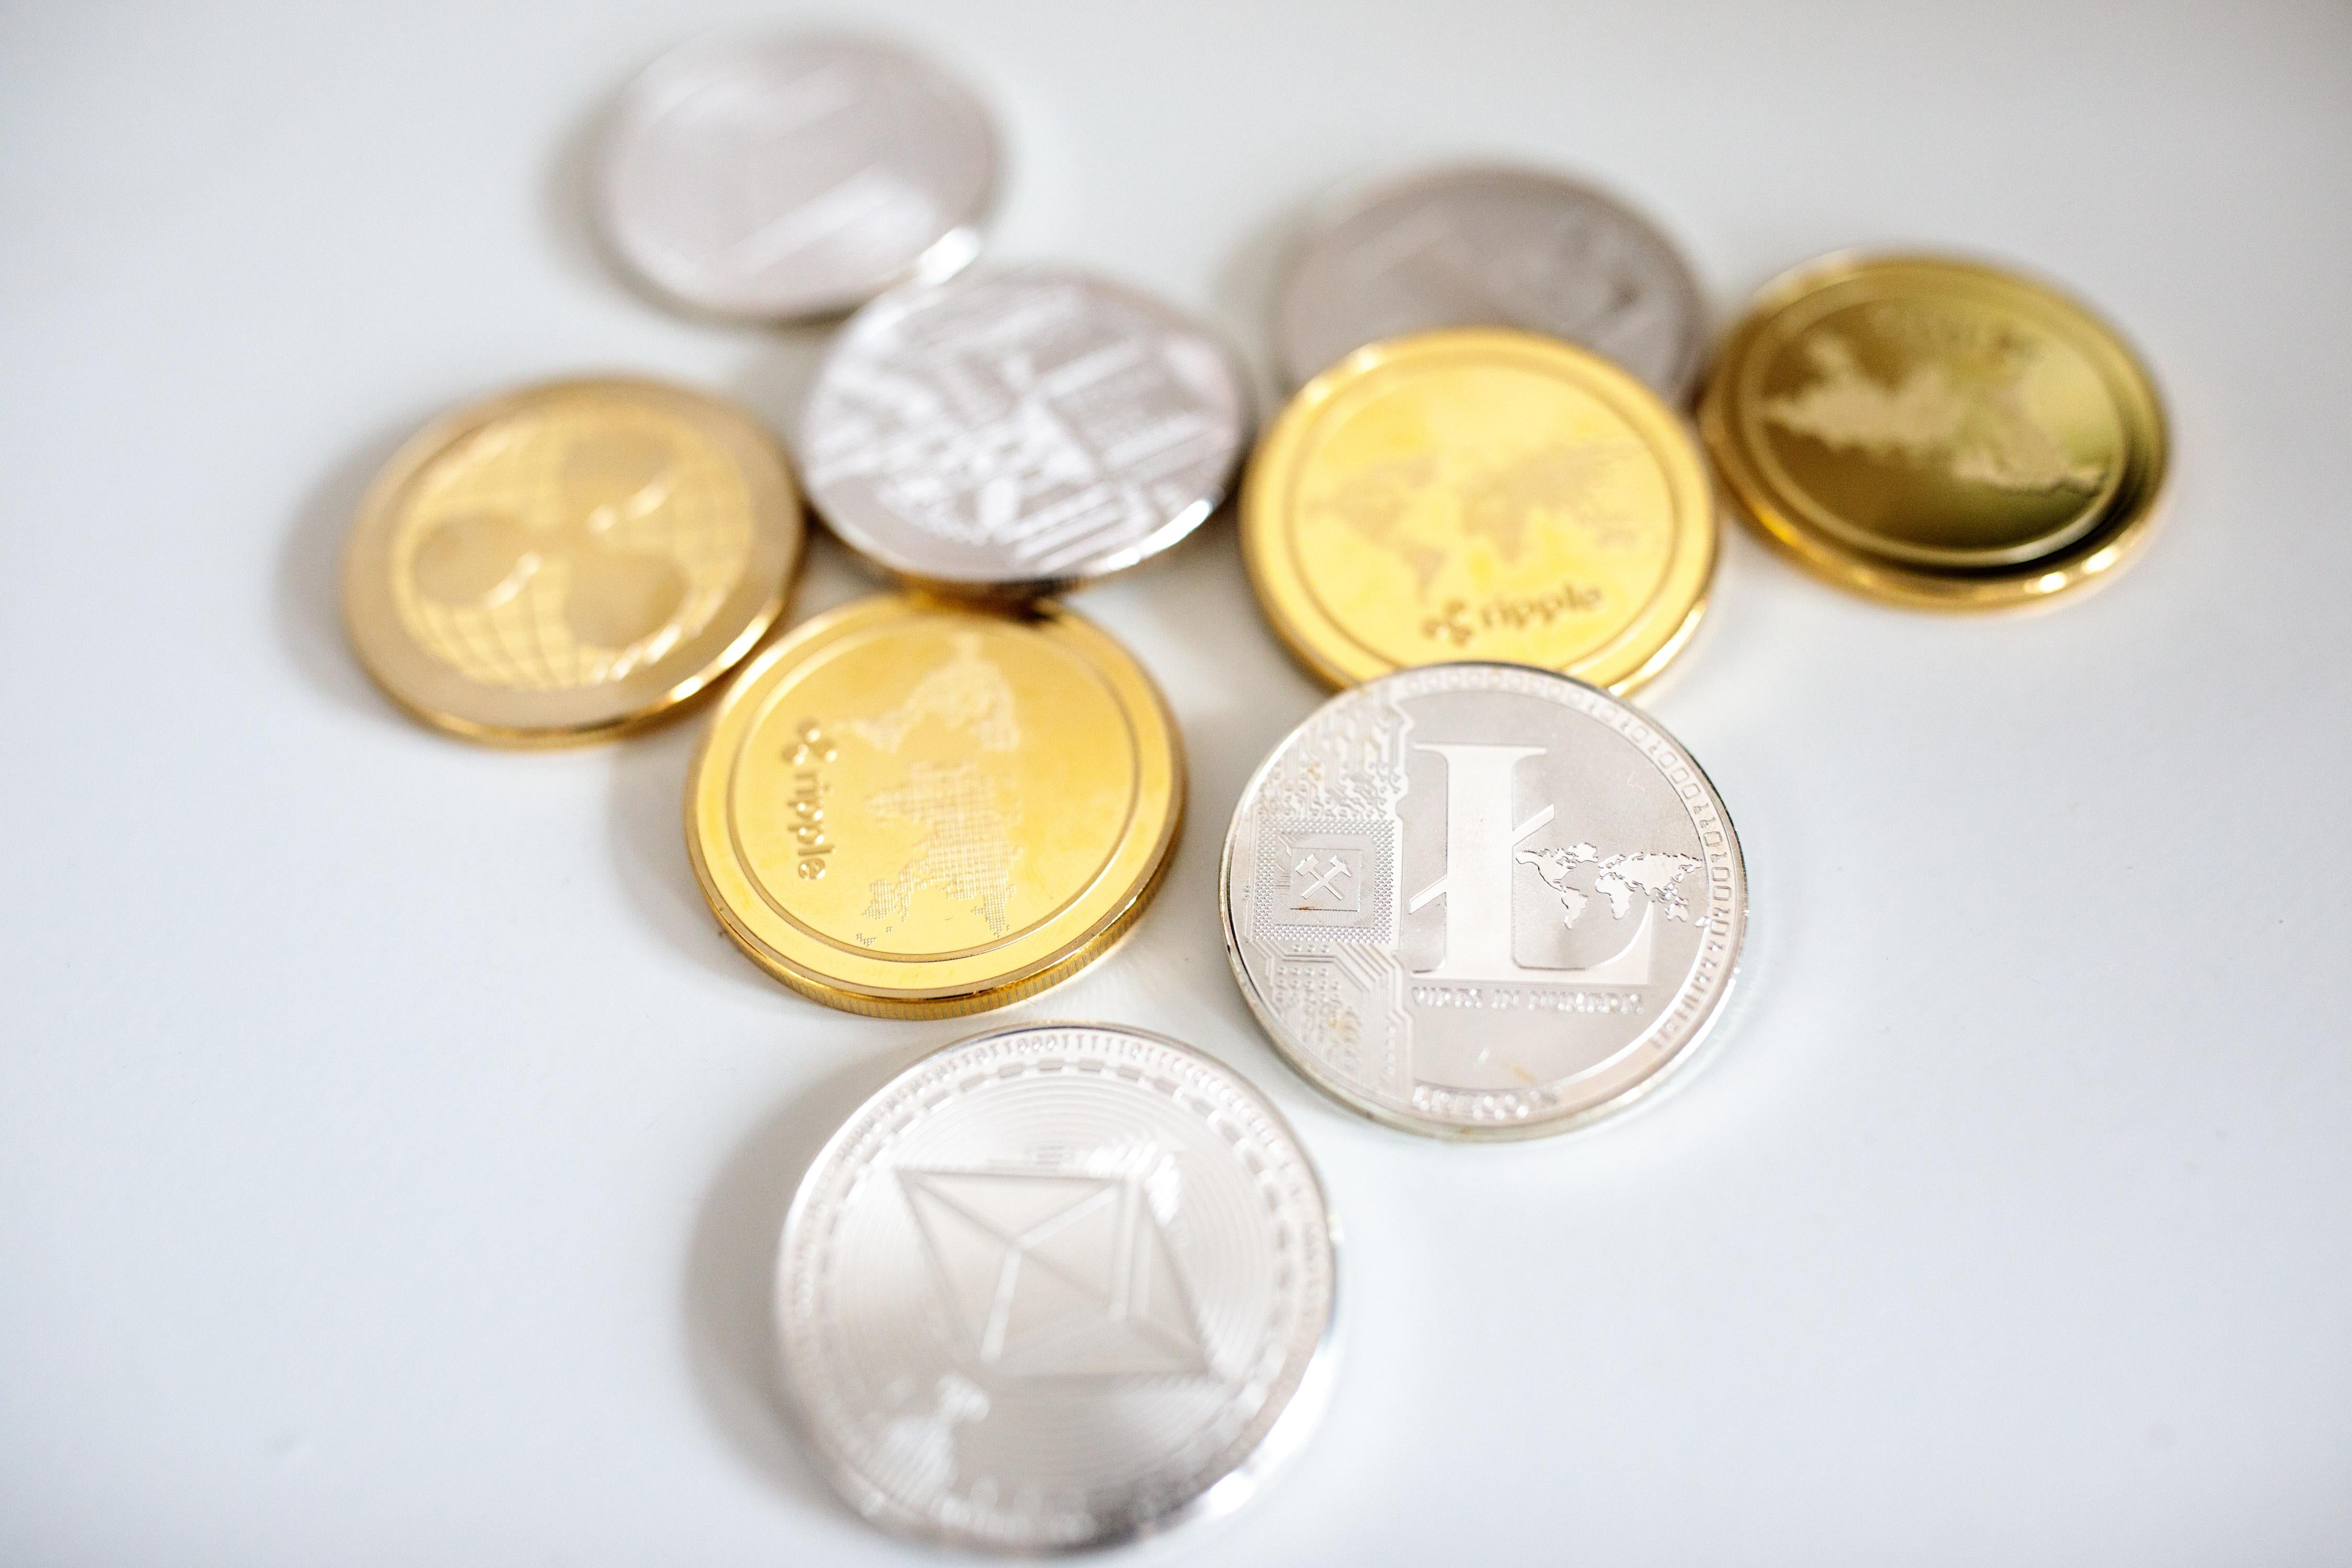 South Korean exchange Coinrail reported that 30 percent of its cryptocurrency was lost in a hack.